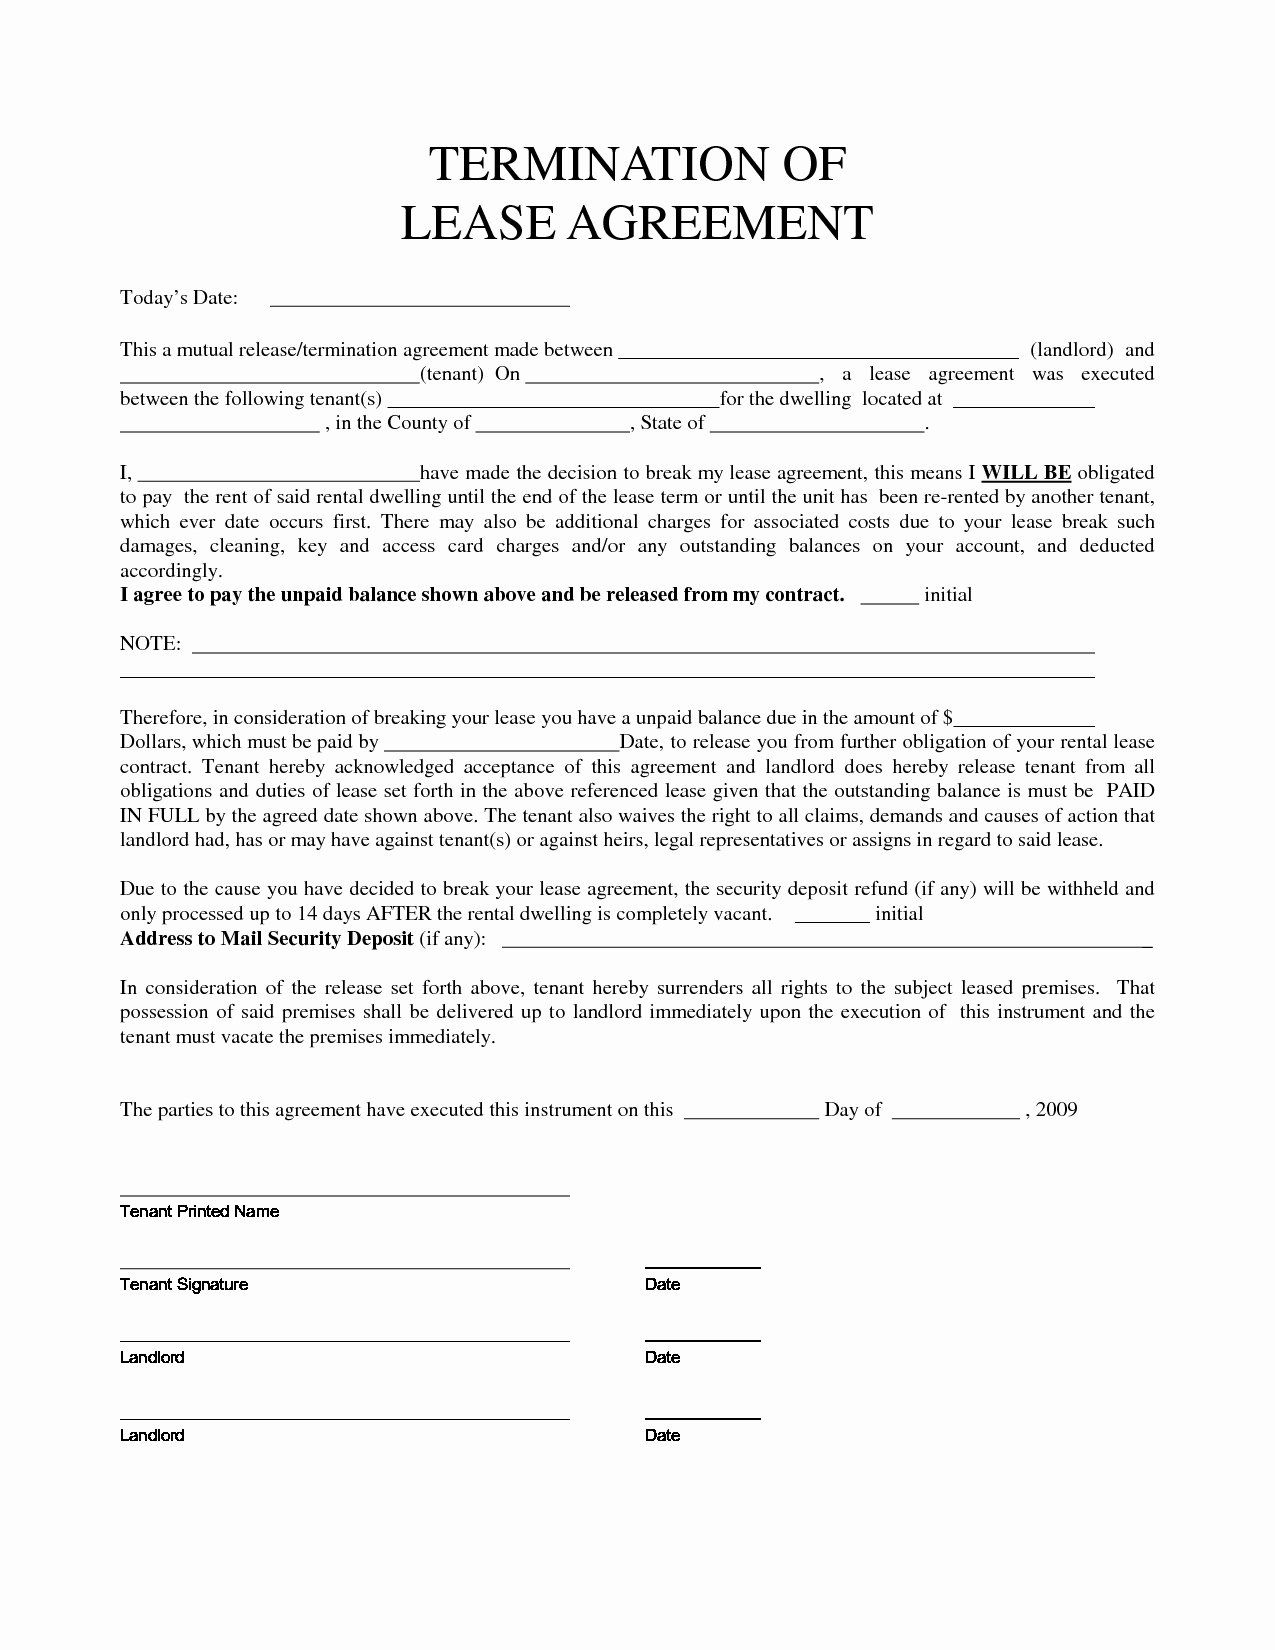 termination of contract template fresh early resume word format free download teacher assistant summary in ms 2007